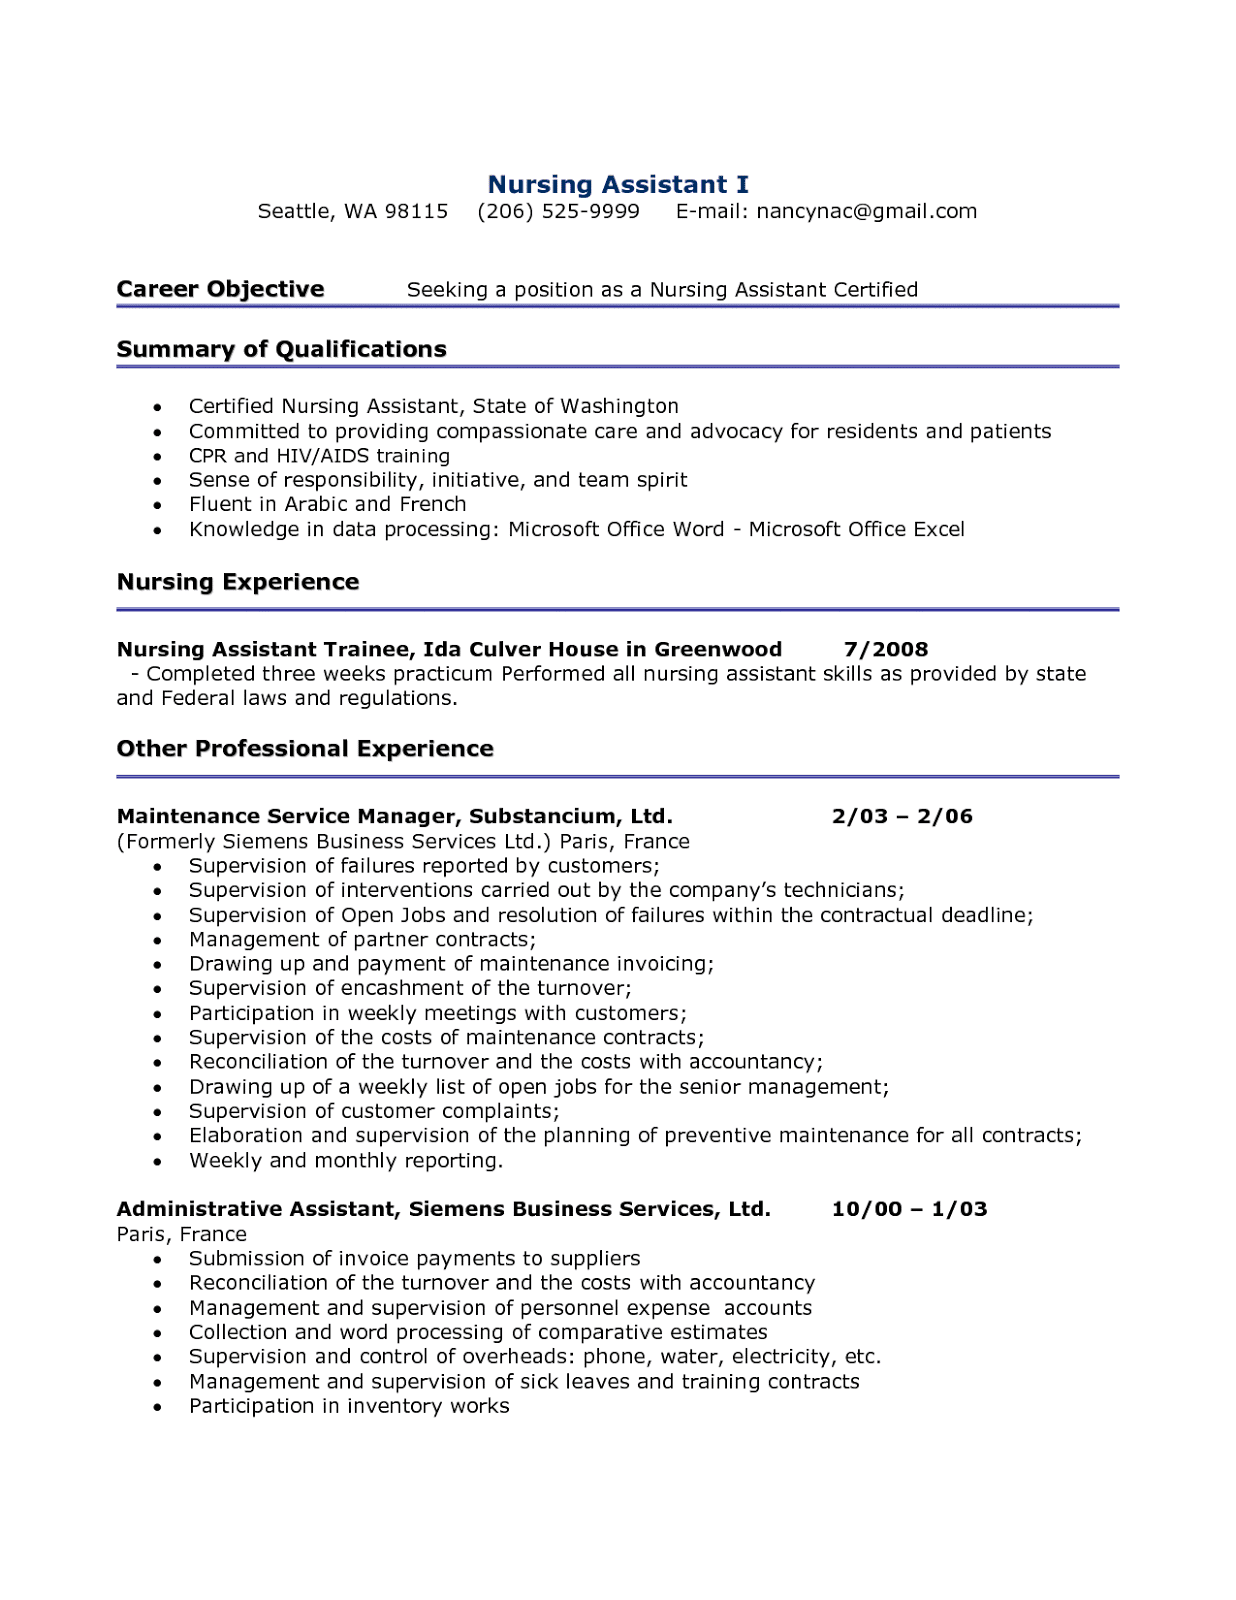 resume sample for nursing assistant sample resumes therefore here this article provide some examples picture of resume for nursing assistant we hopes it can help you to solve your problem and you can get